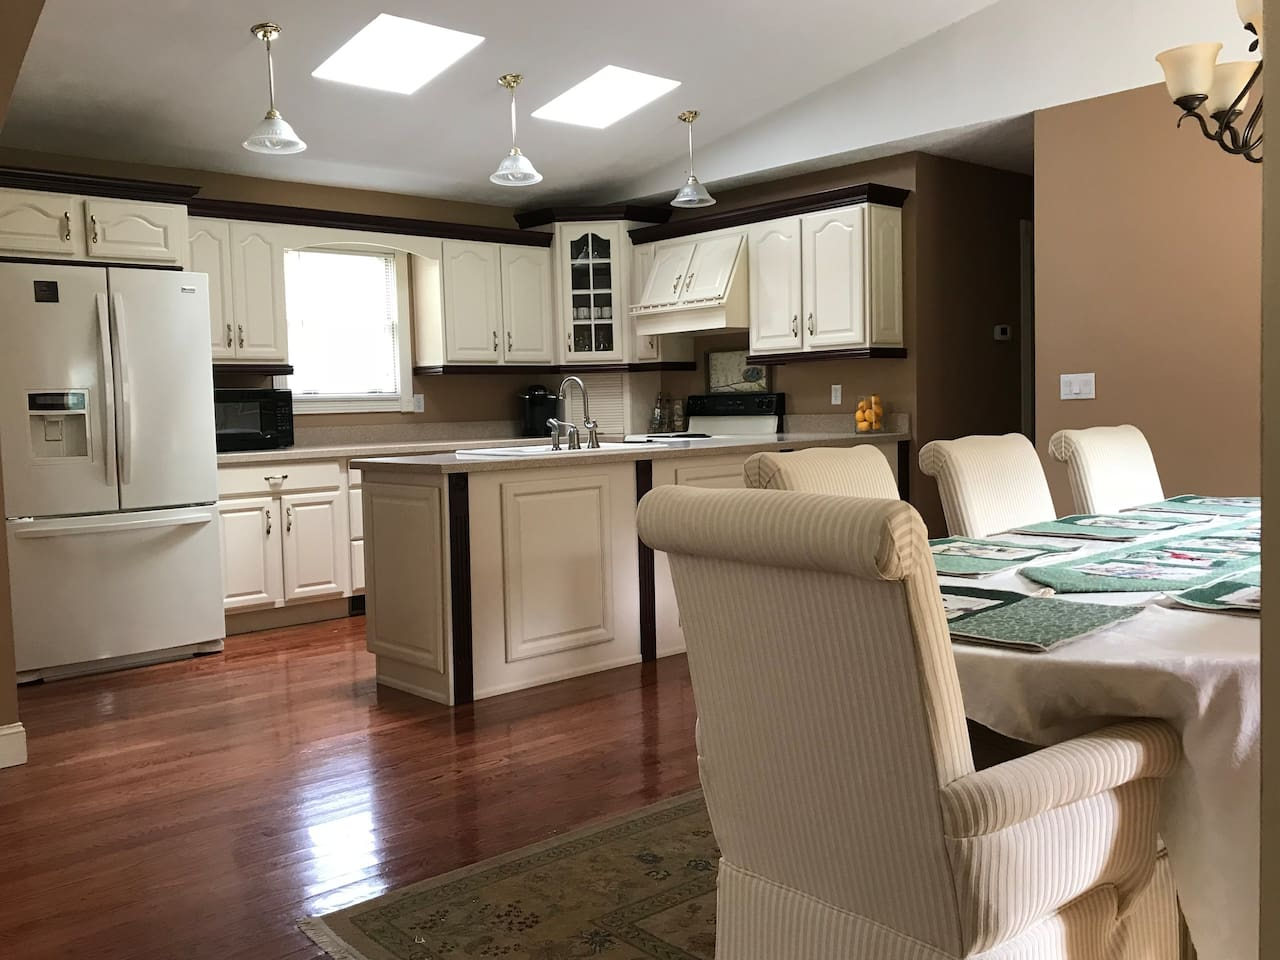 Bridge Day Getaway - Large open concept kitchen, dining, and living room